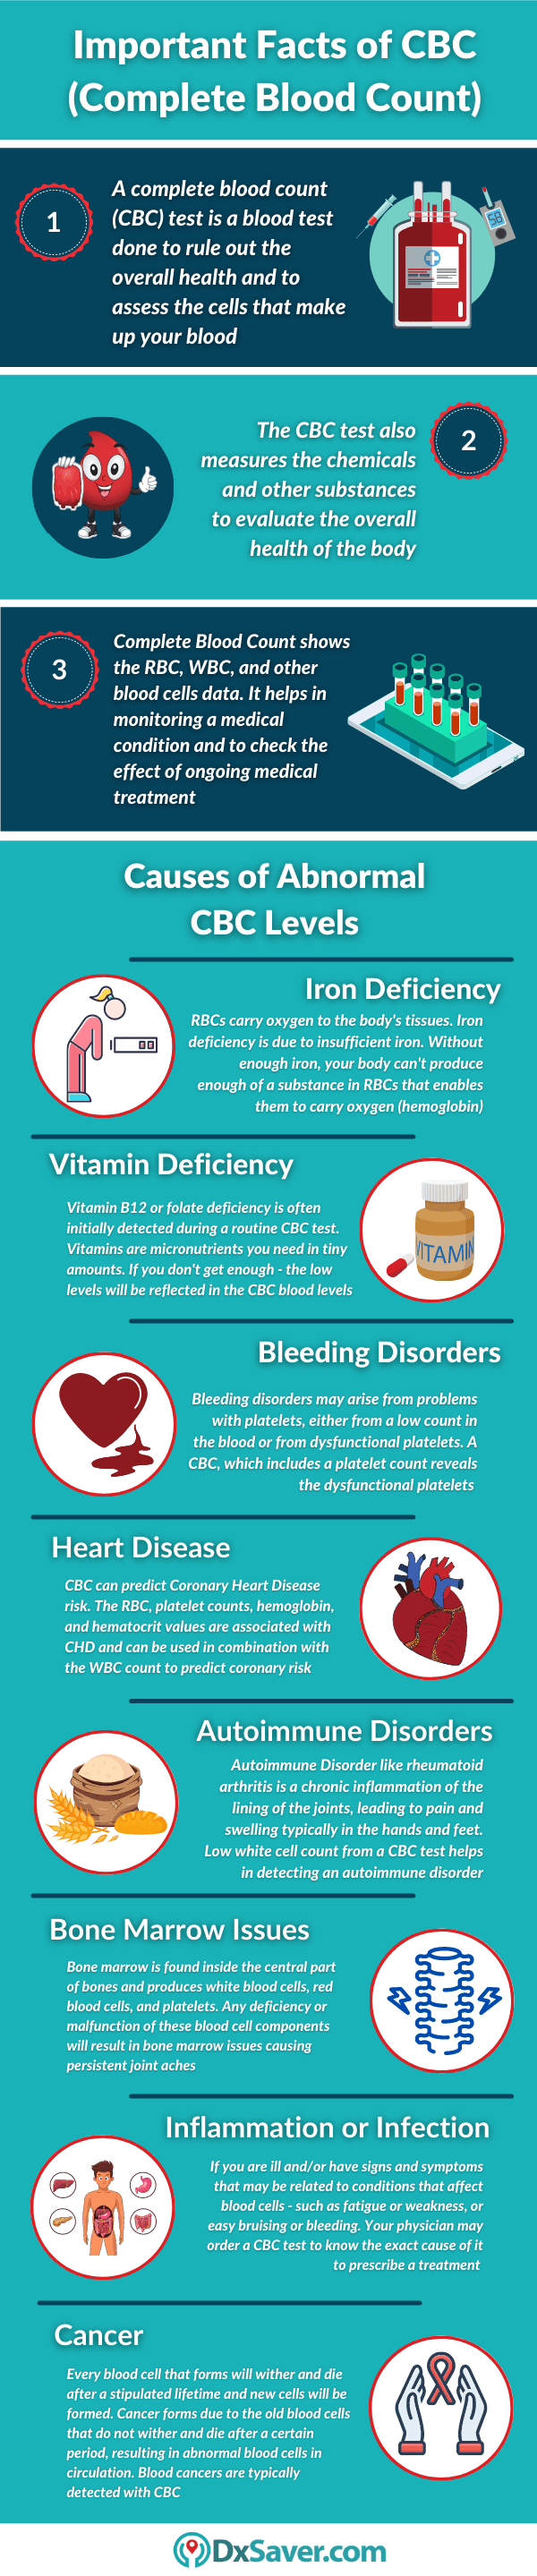 Causes of low and high CBC levels in blood - Infographic